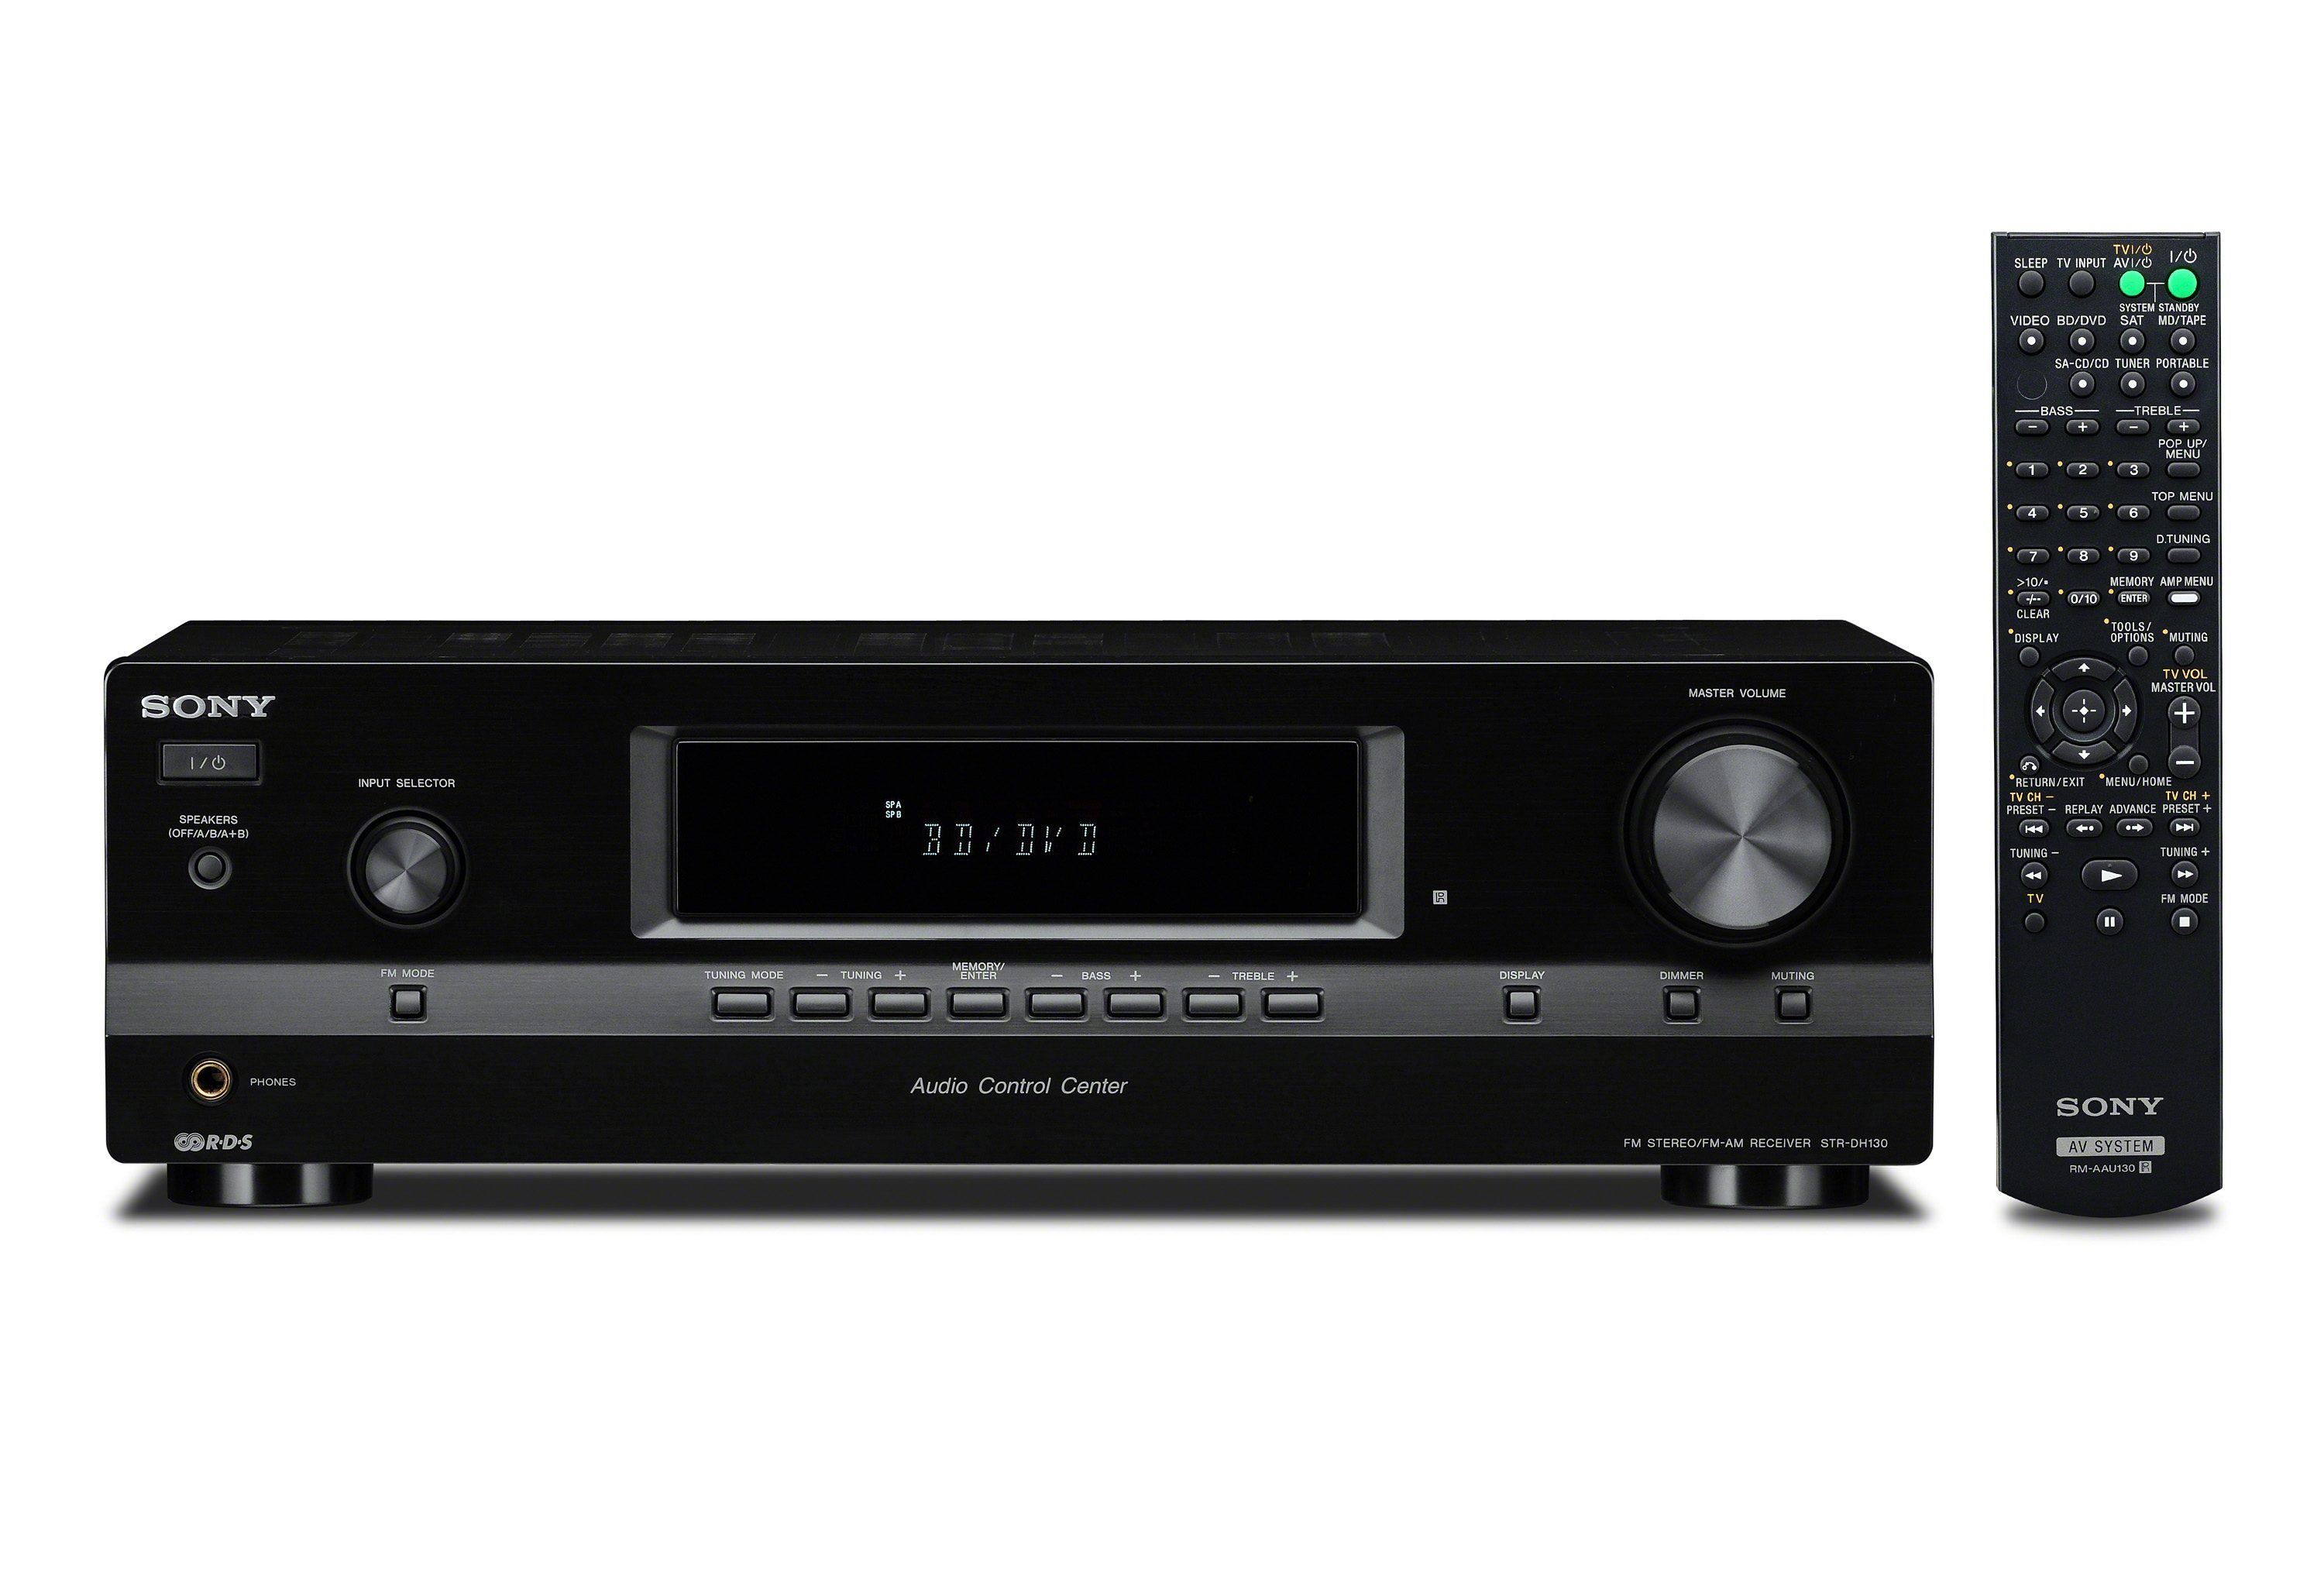 Sony STR-DH130 Stereoreceiver